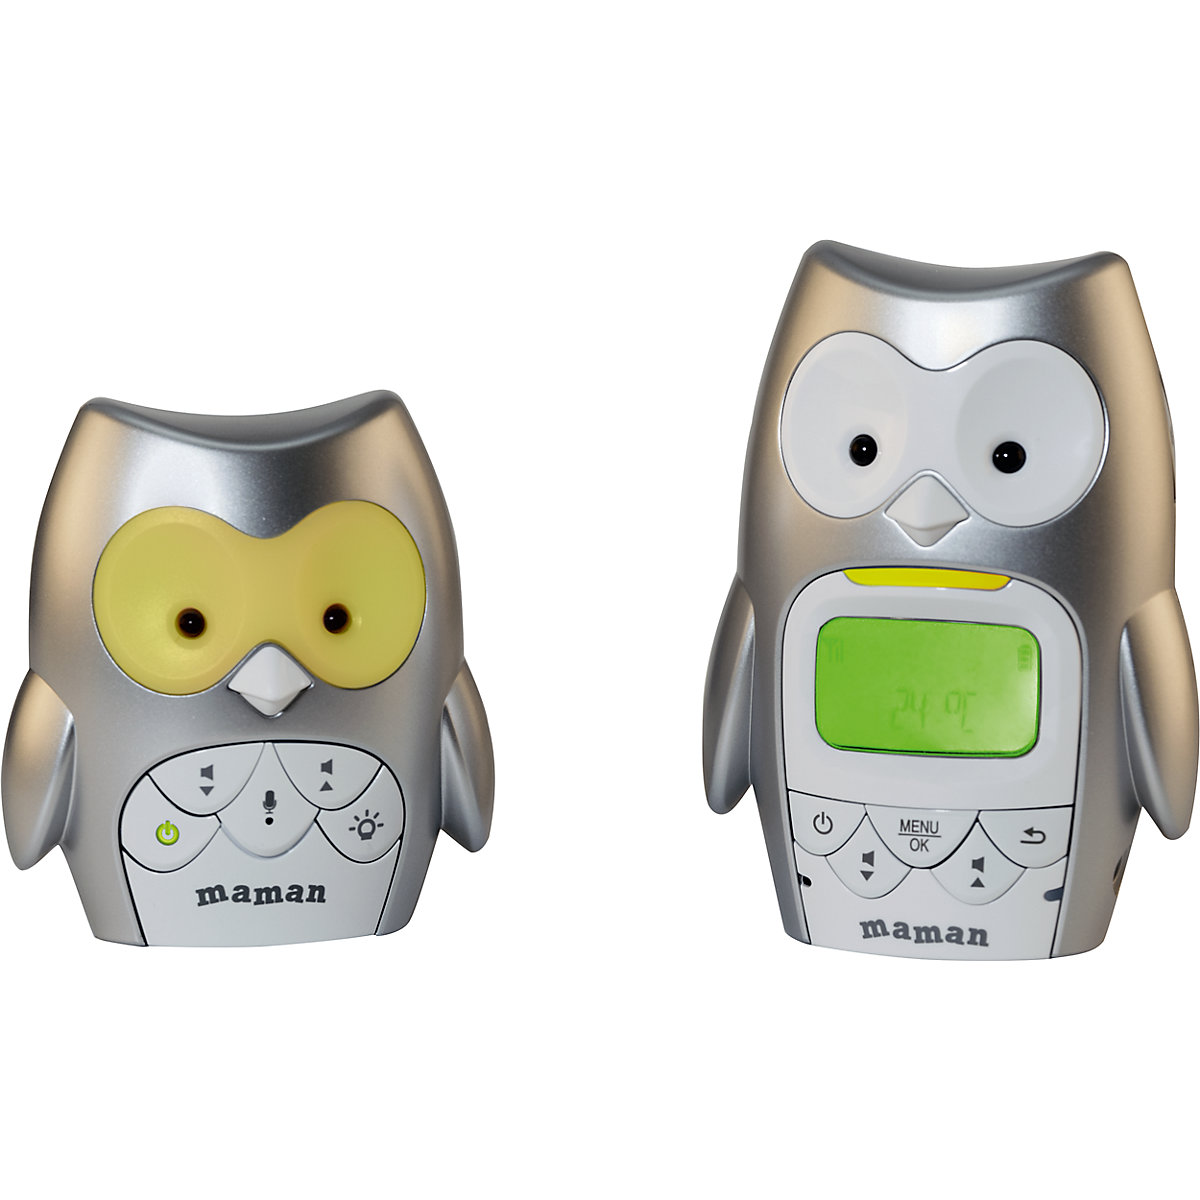 Baby Sleeping Monitors MAMAN 7142169 Safety baby monitor control for children